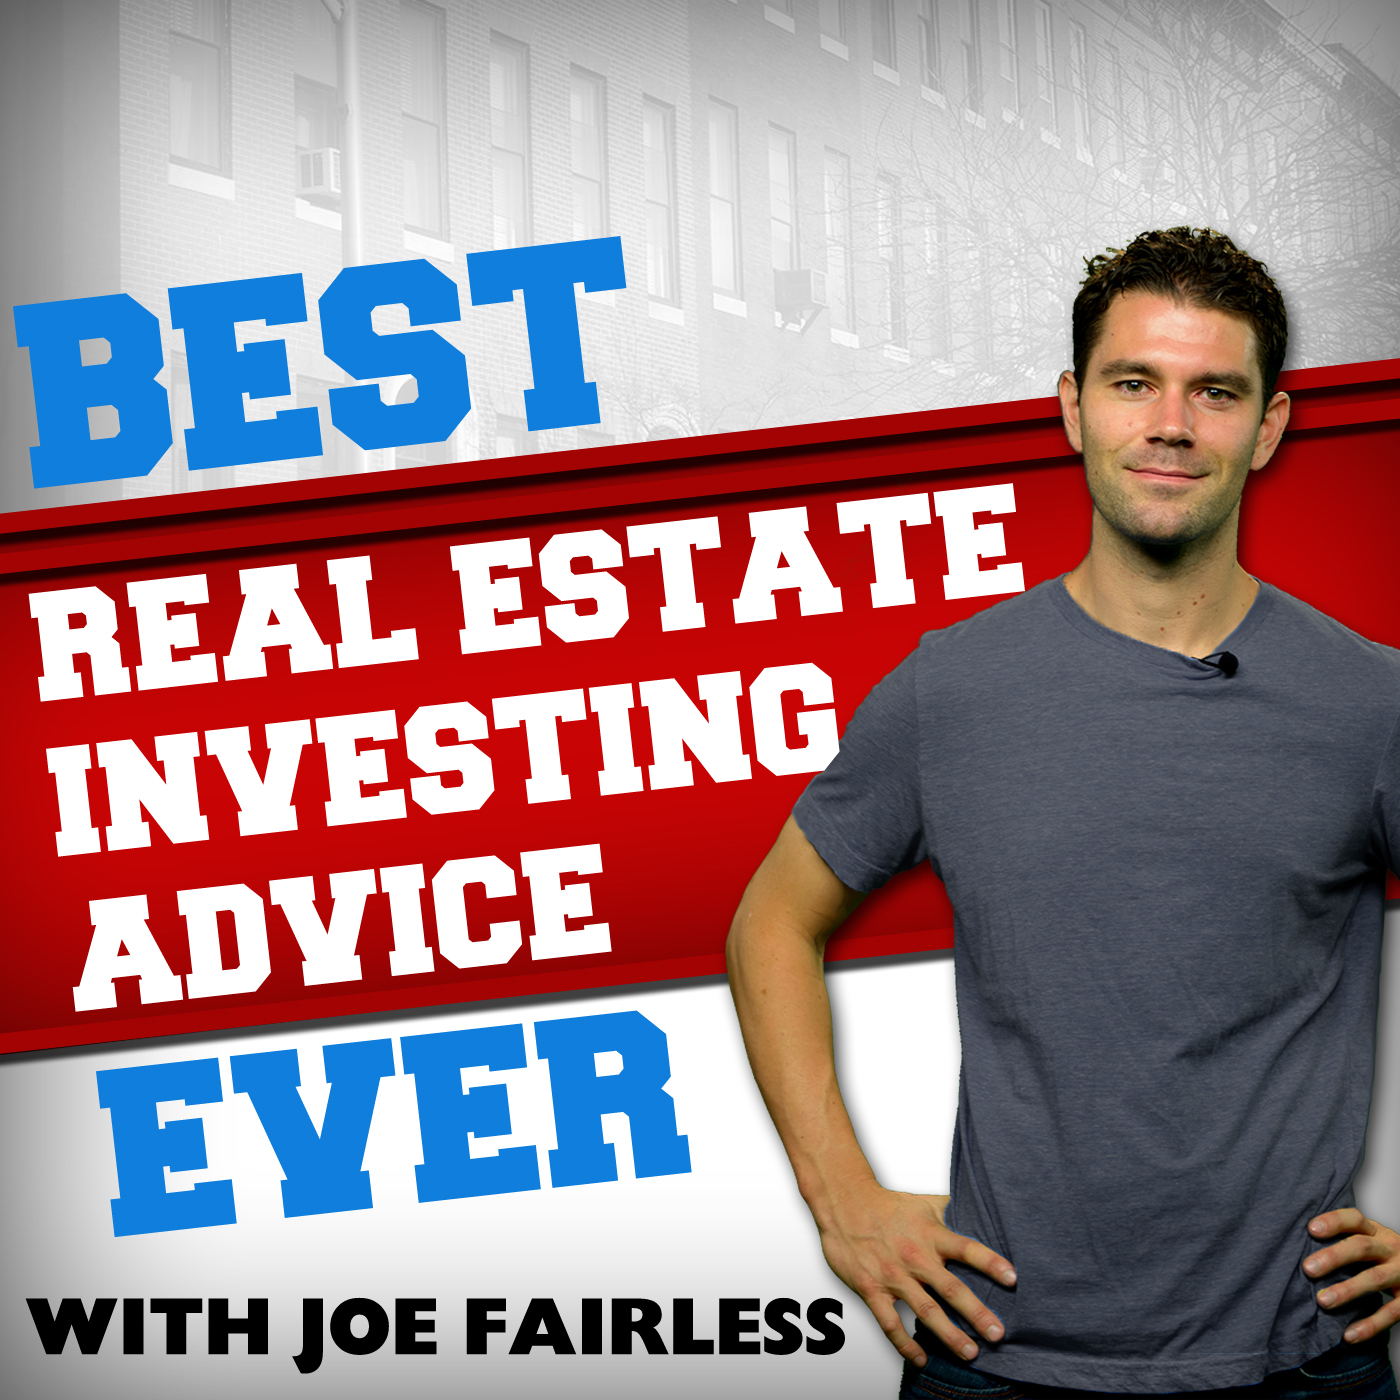 JF219: Flipping Houses and Apartments Is the Same, Right?! WRONG!